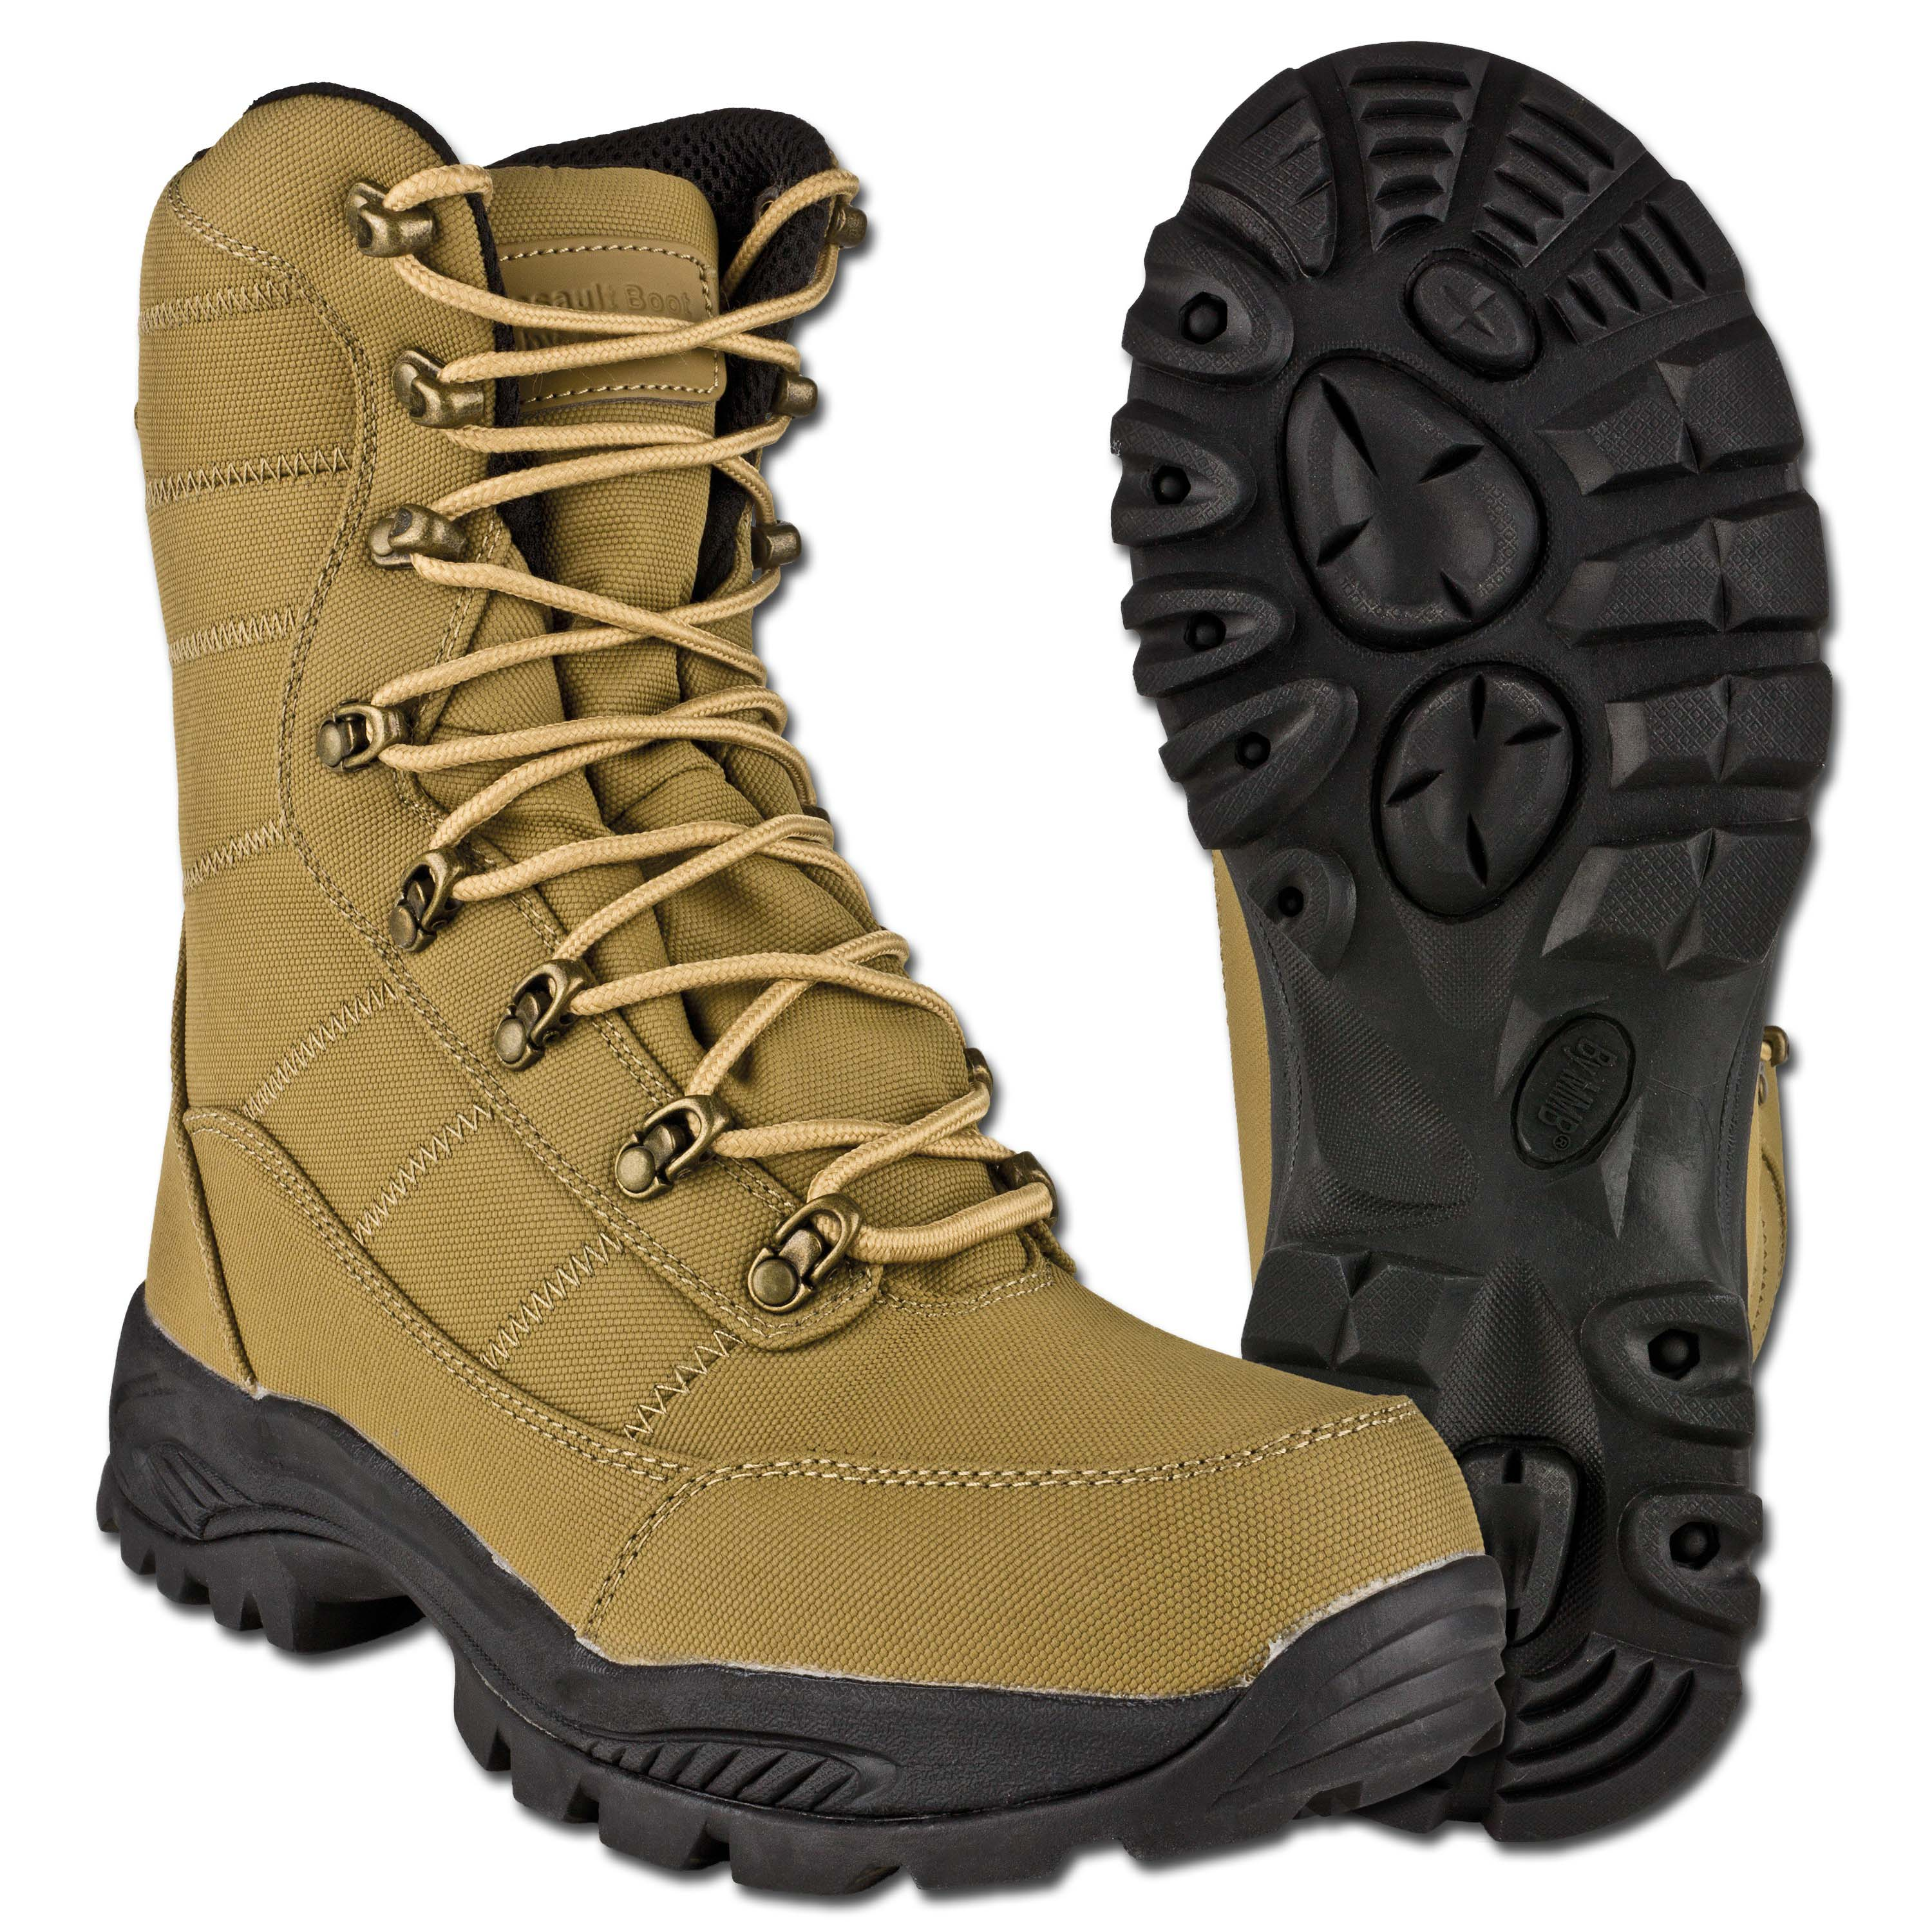 Stiefel MMB Assault Boot coyote